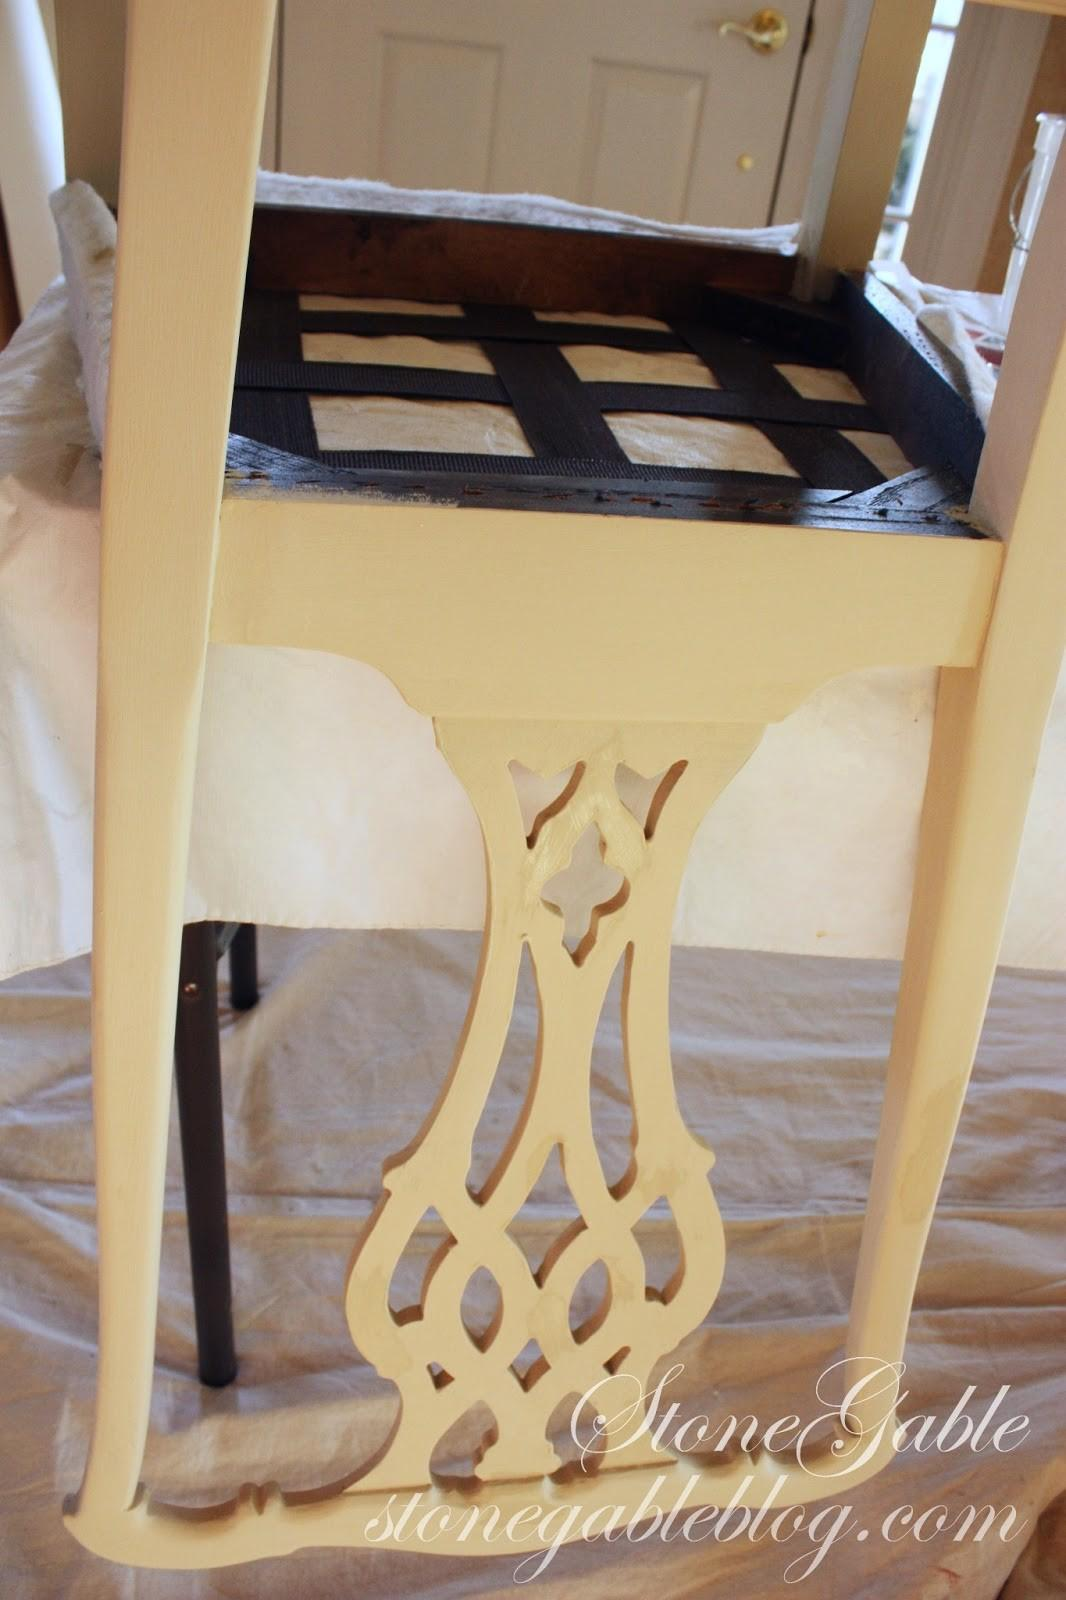 Reupholstering Chair Part Painting Stonegable